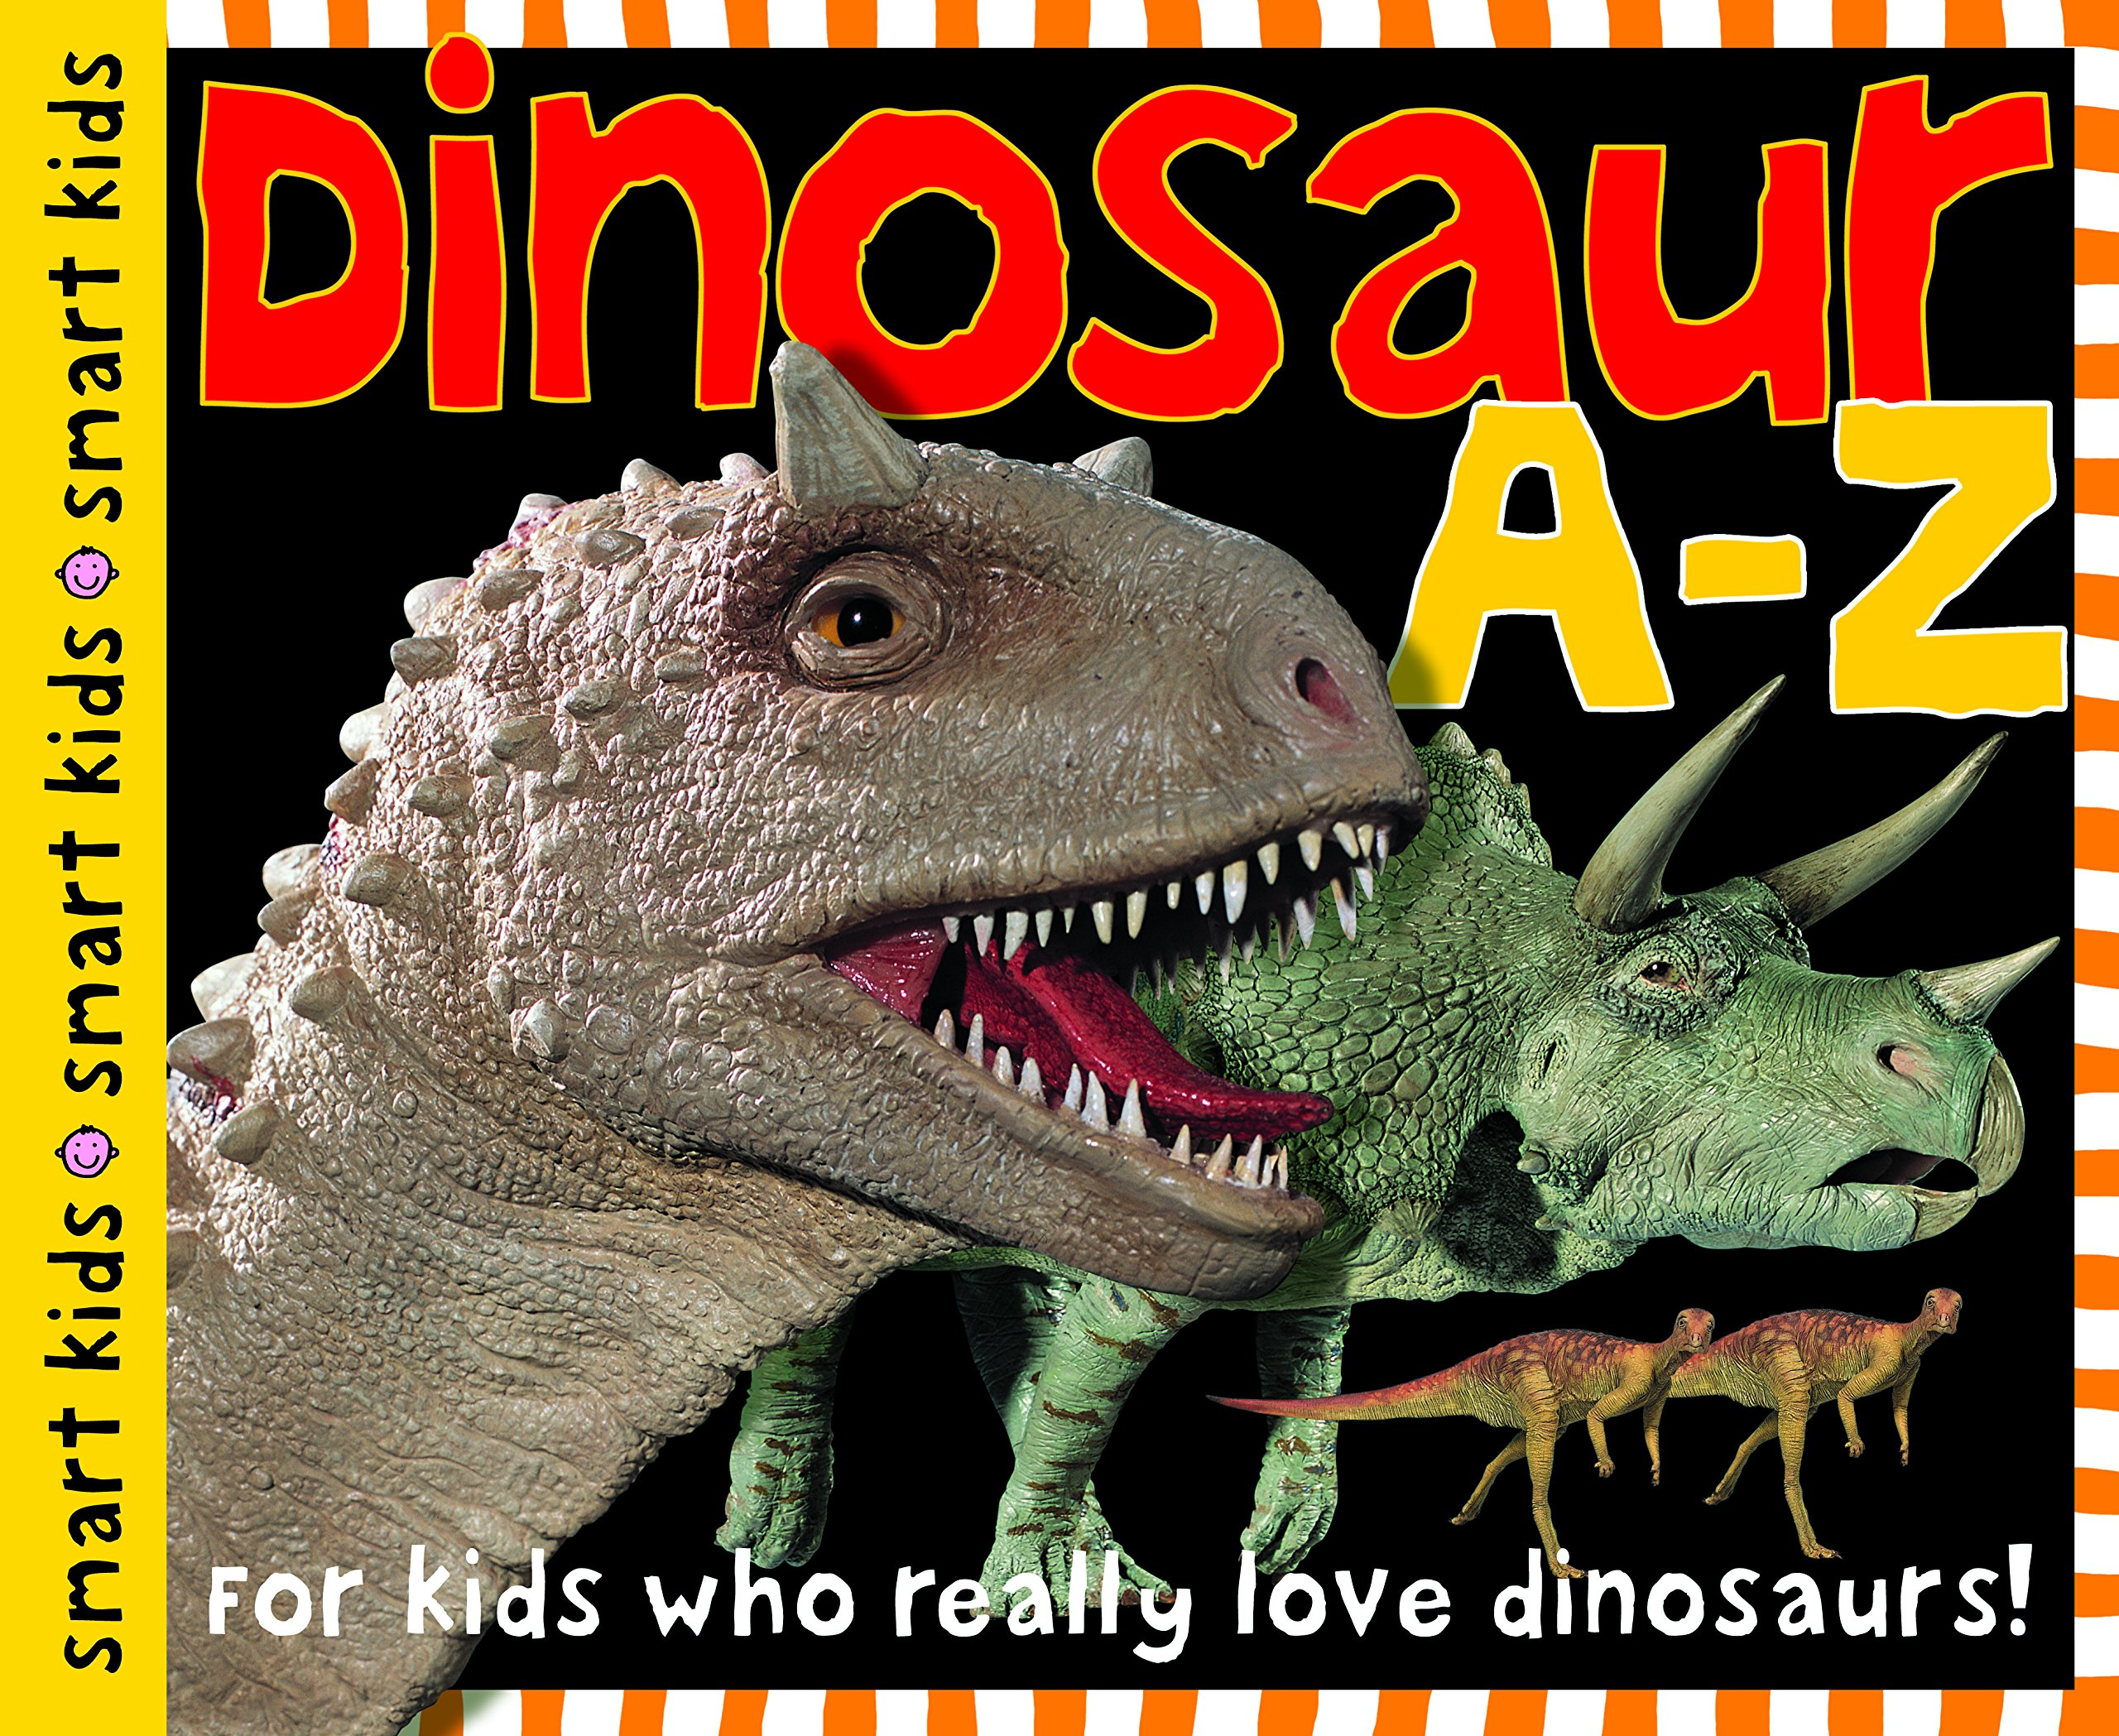 Dinosaur Z kids really dinosaurs product image